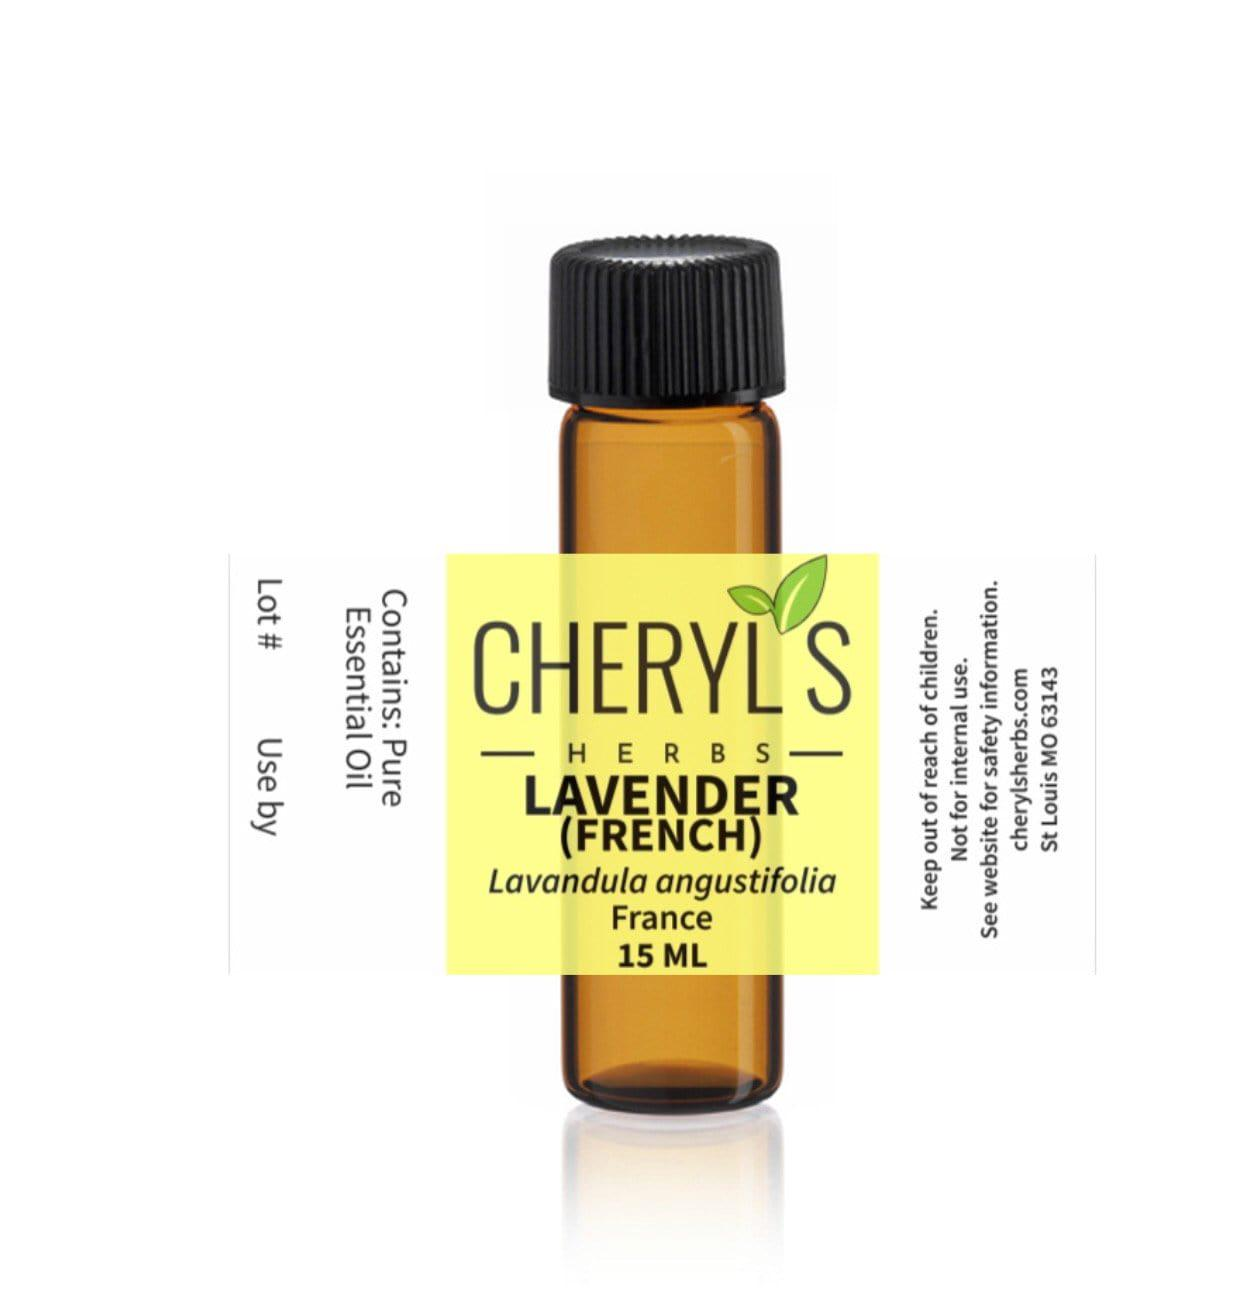 LAVENDER FRANCE ESSENTIAL OIL - Cheryls Herbs